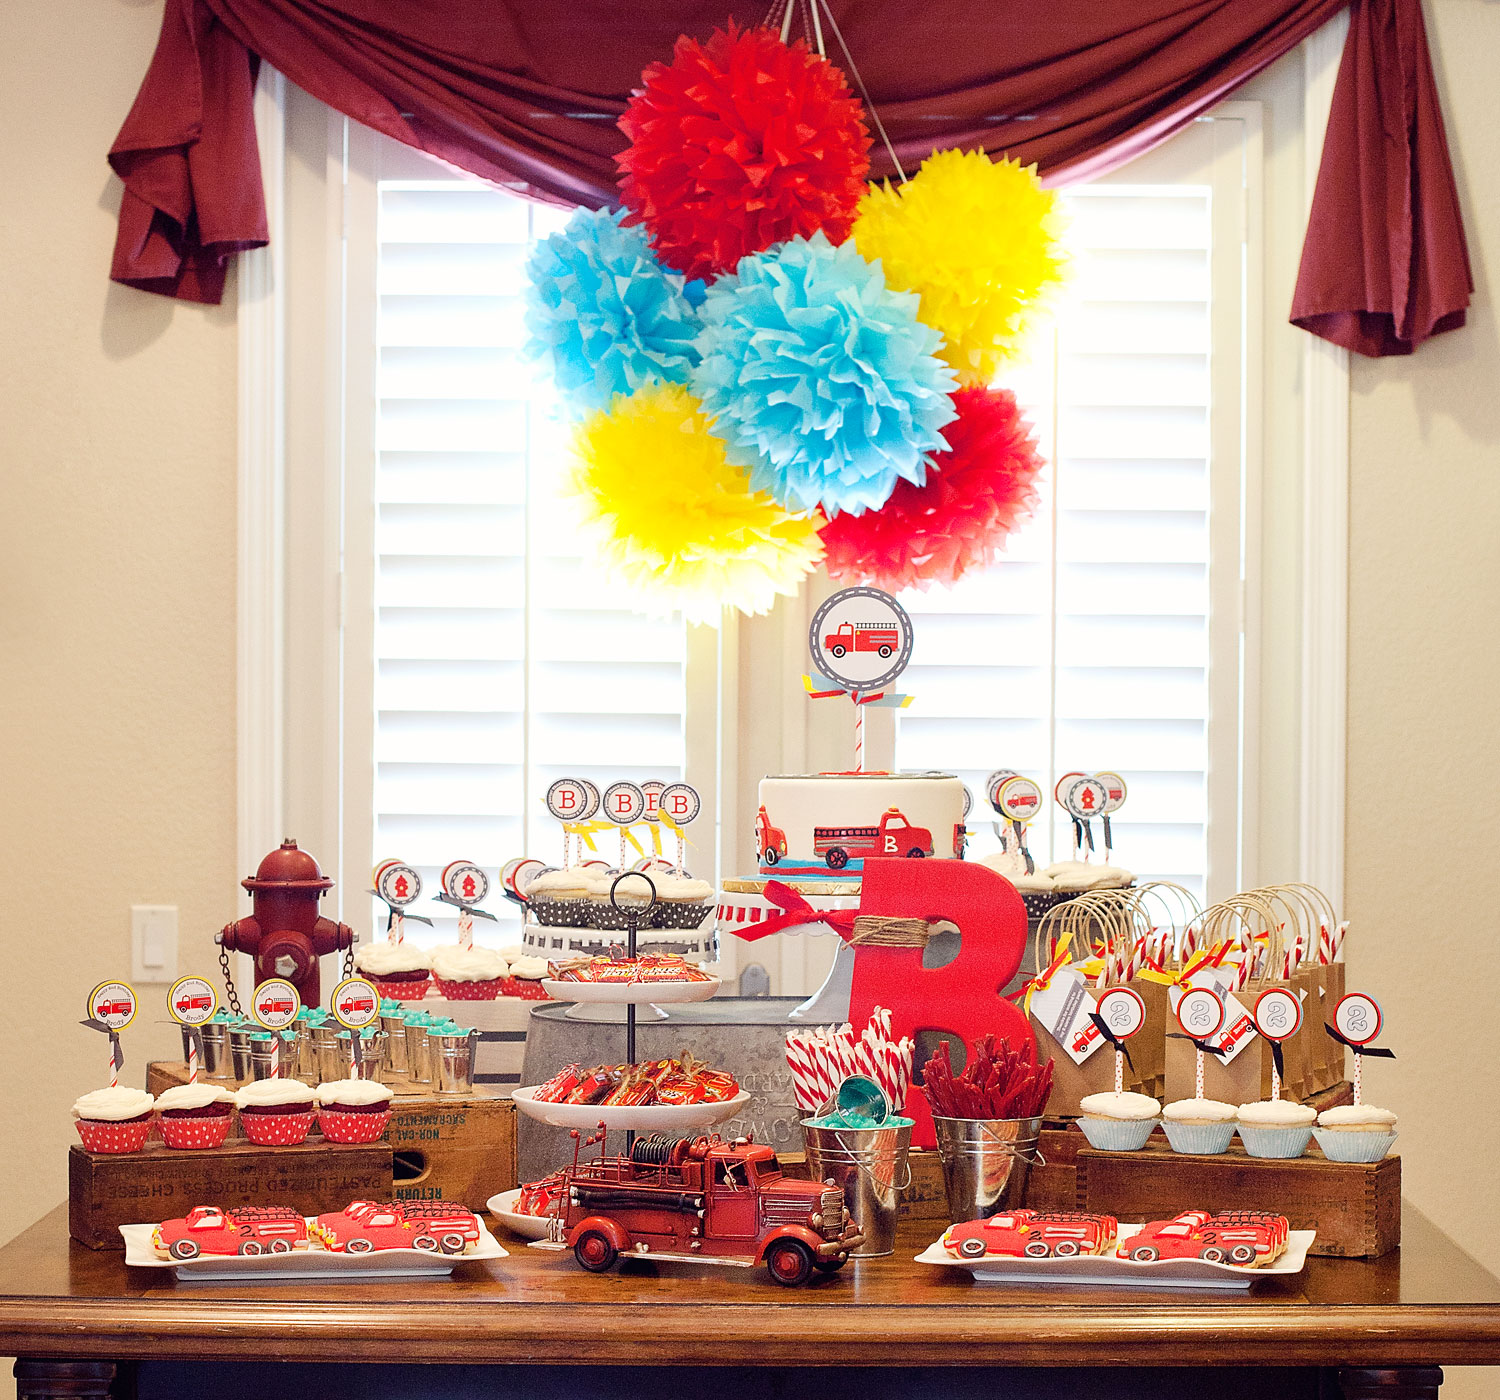 A Vintage Firetruck Birthday Party